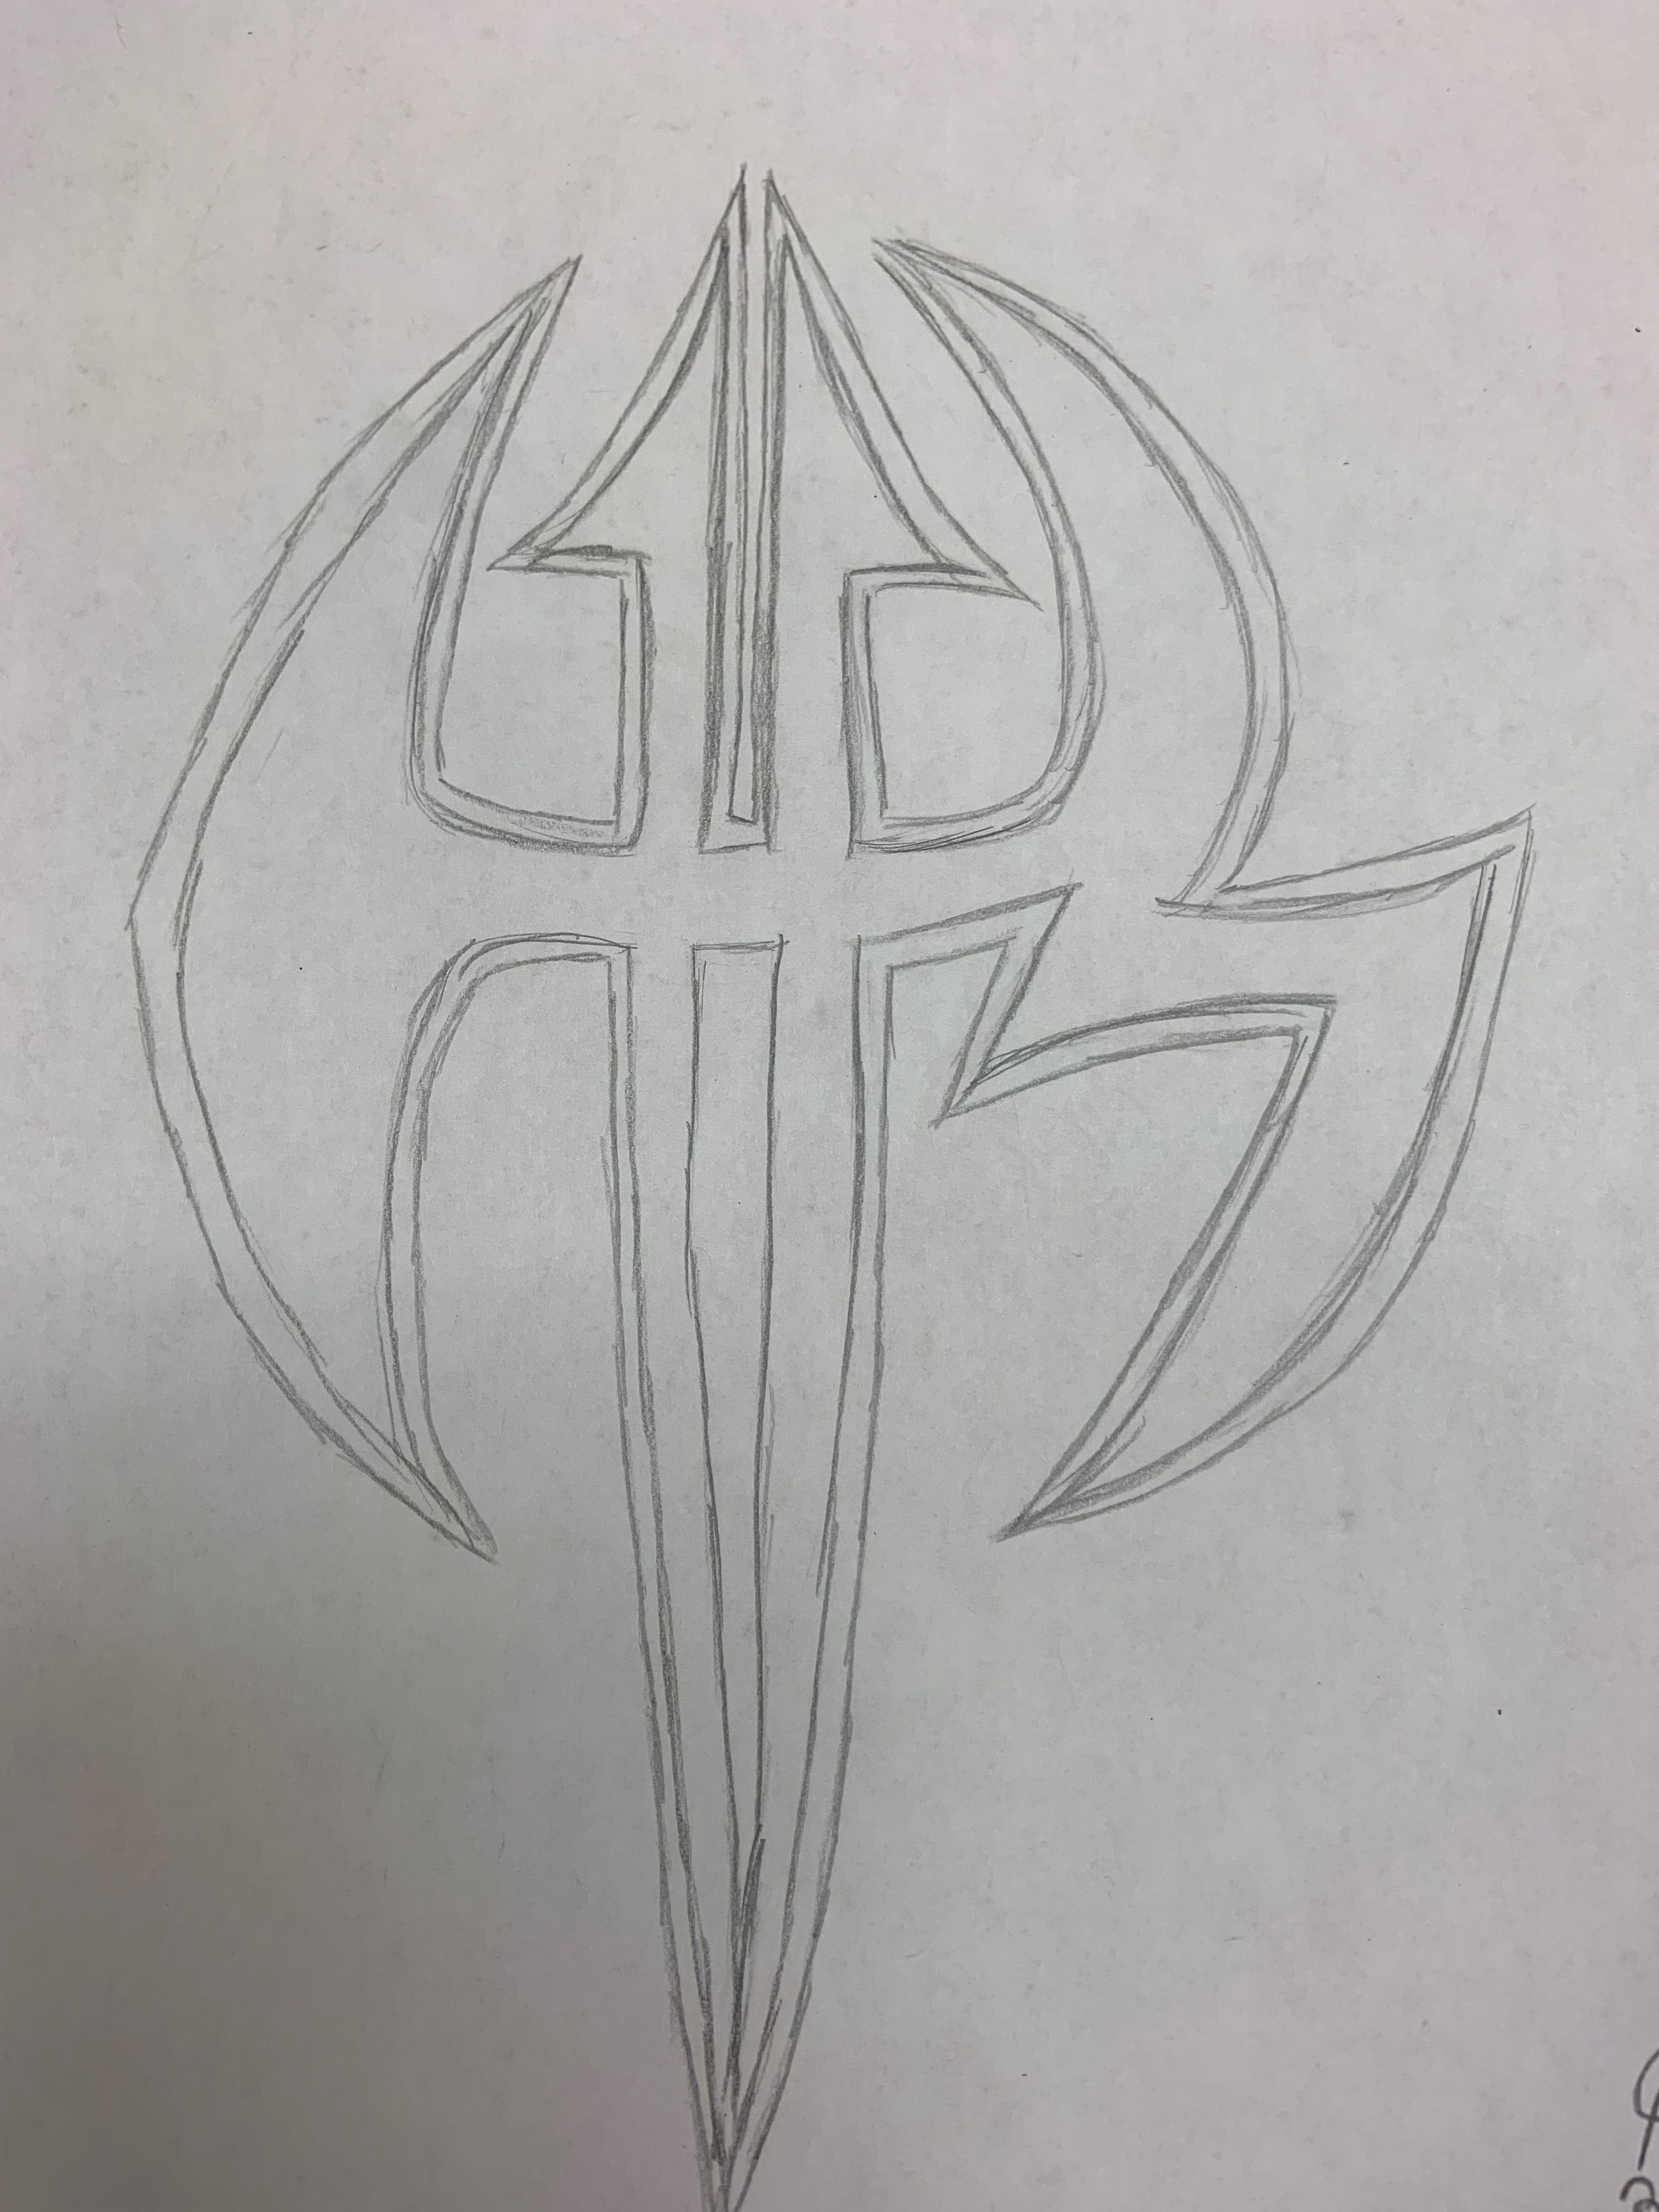 My Drawing of The Hardy Boyz Logo in 2019.